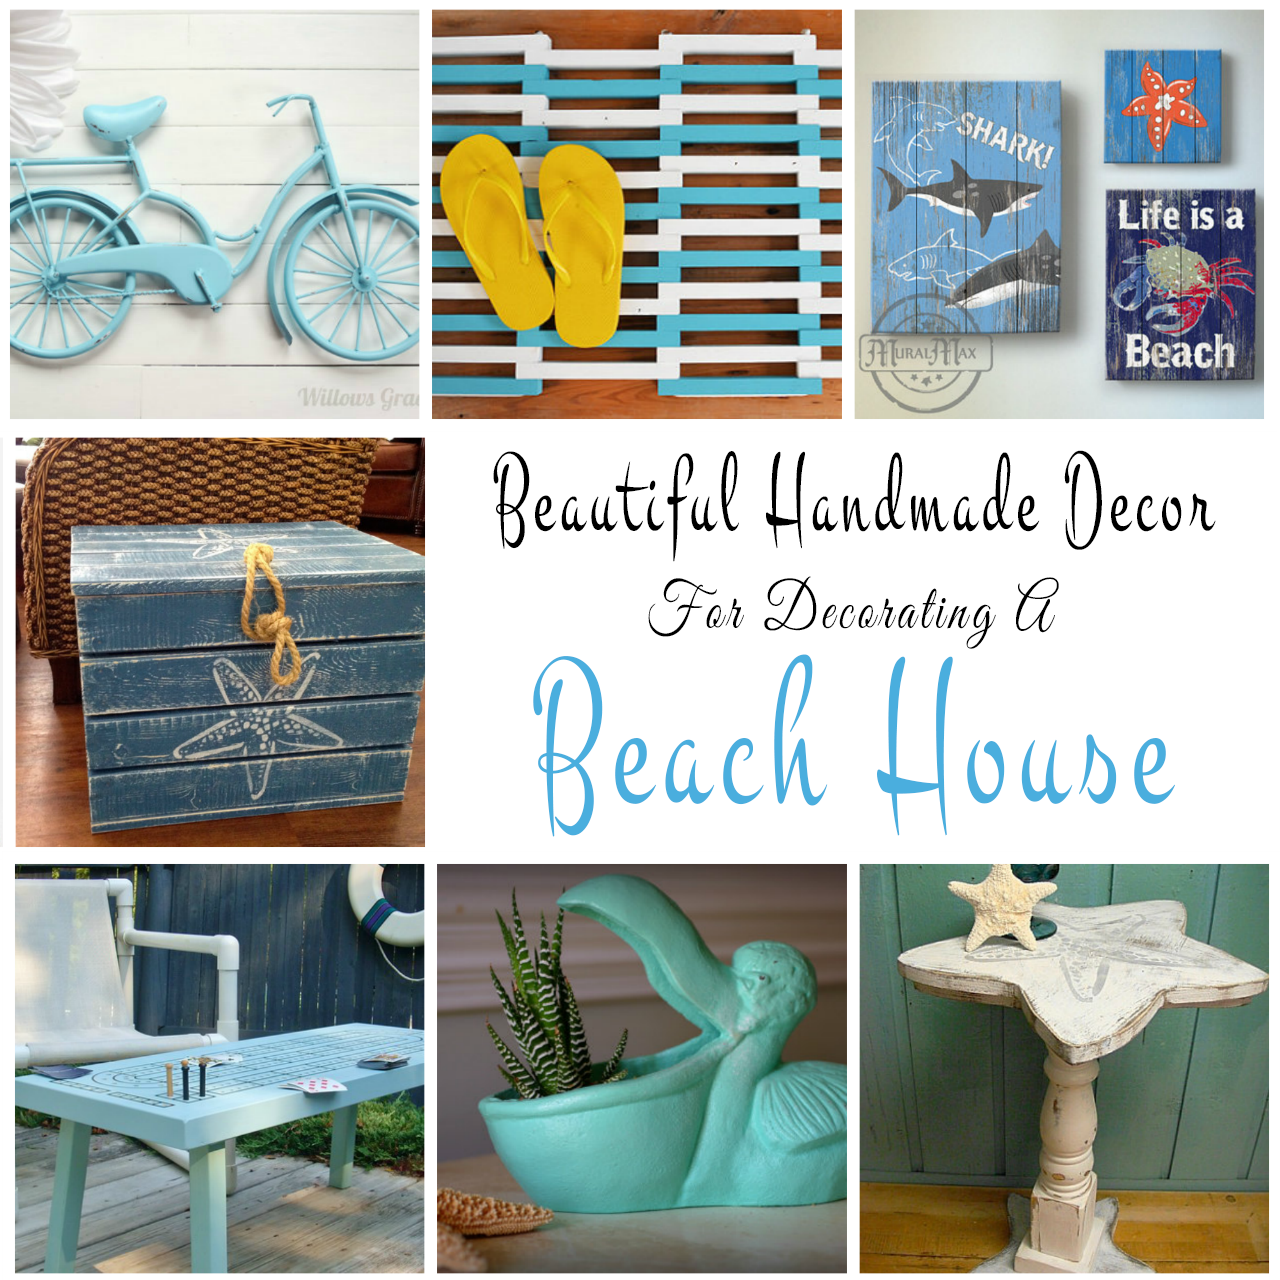 Home Design Ideas Handmade: 25 Handmade Decor Ideas For Decorating A Beach House